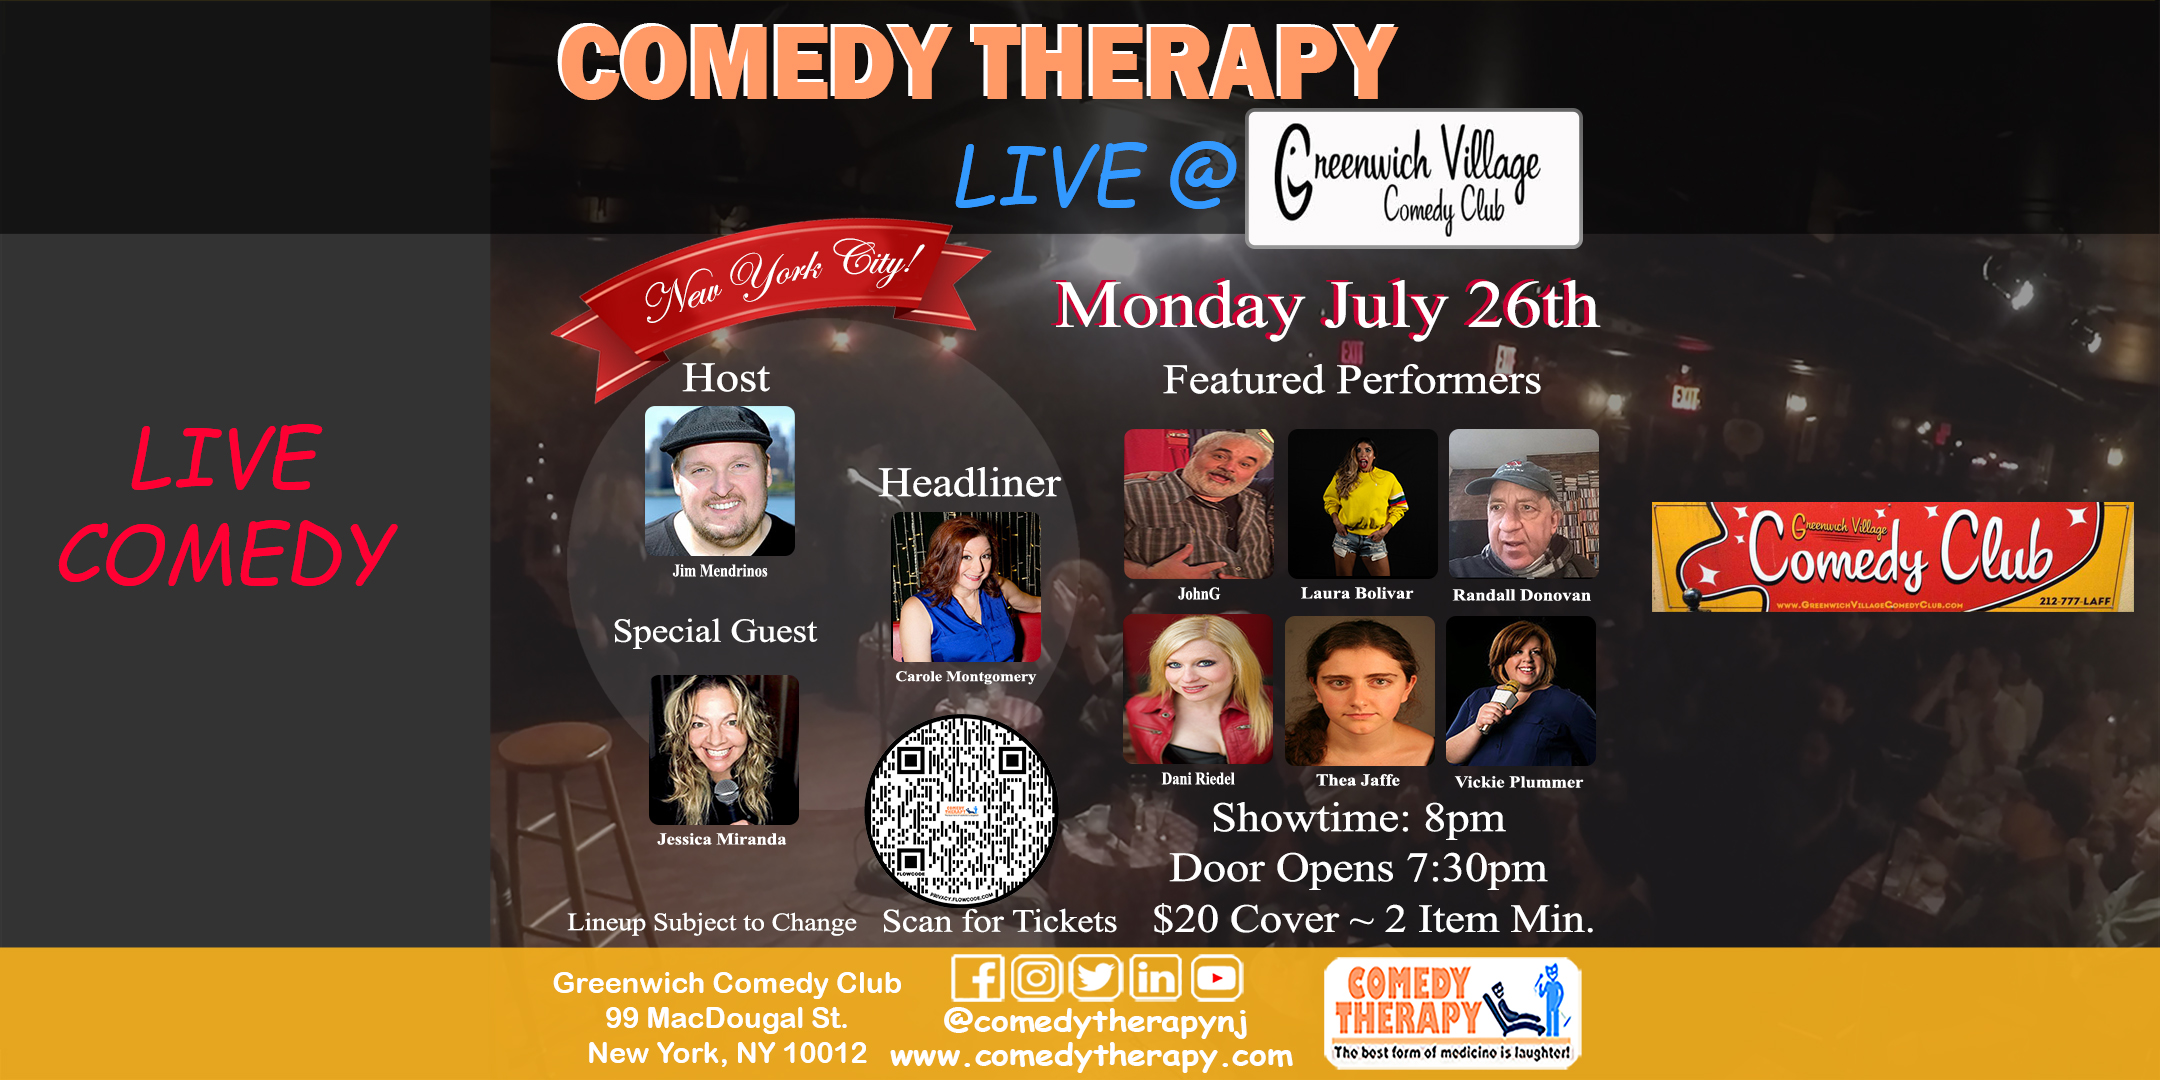 Comedy Therapy Live at Greenwich Comedy Club